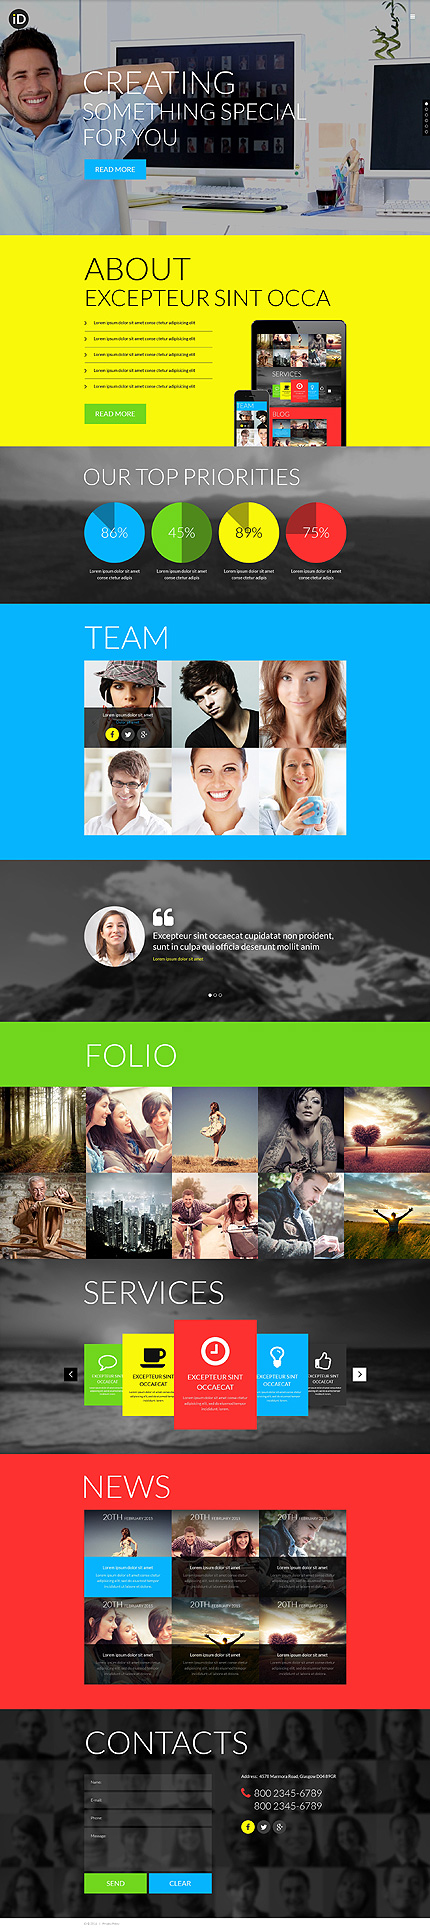 Template 51194 - Design Studio Responsive Website Template With Parallax, Background Video and Lazy Load